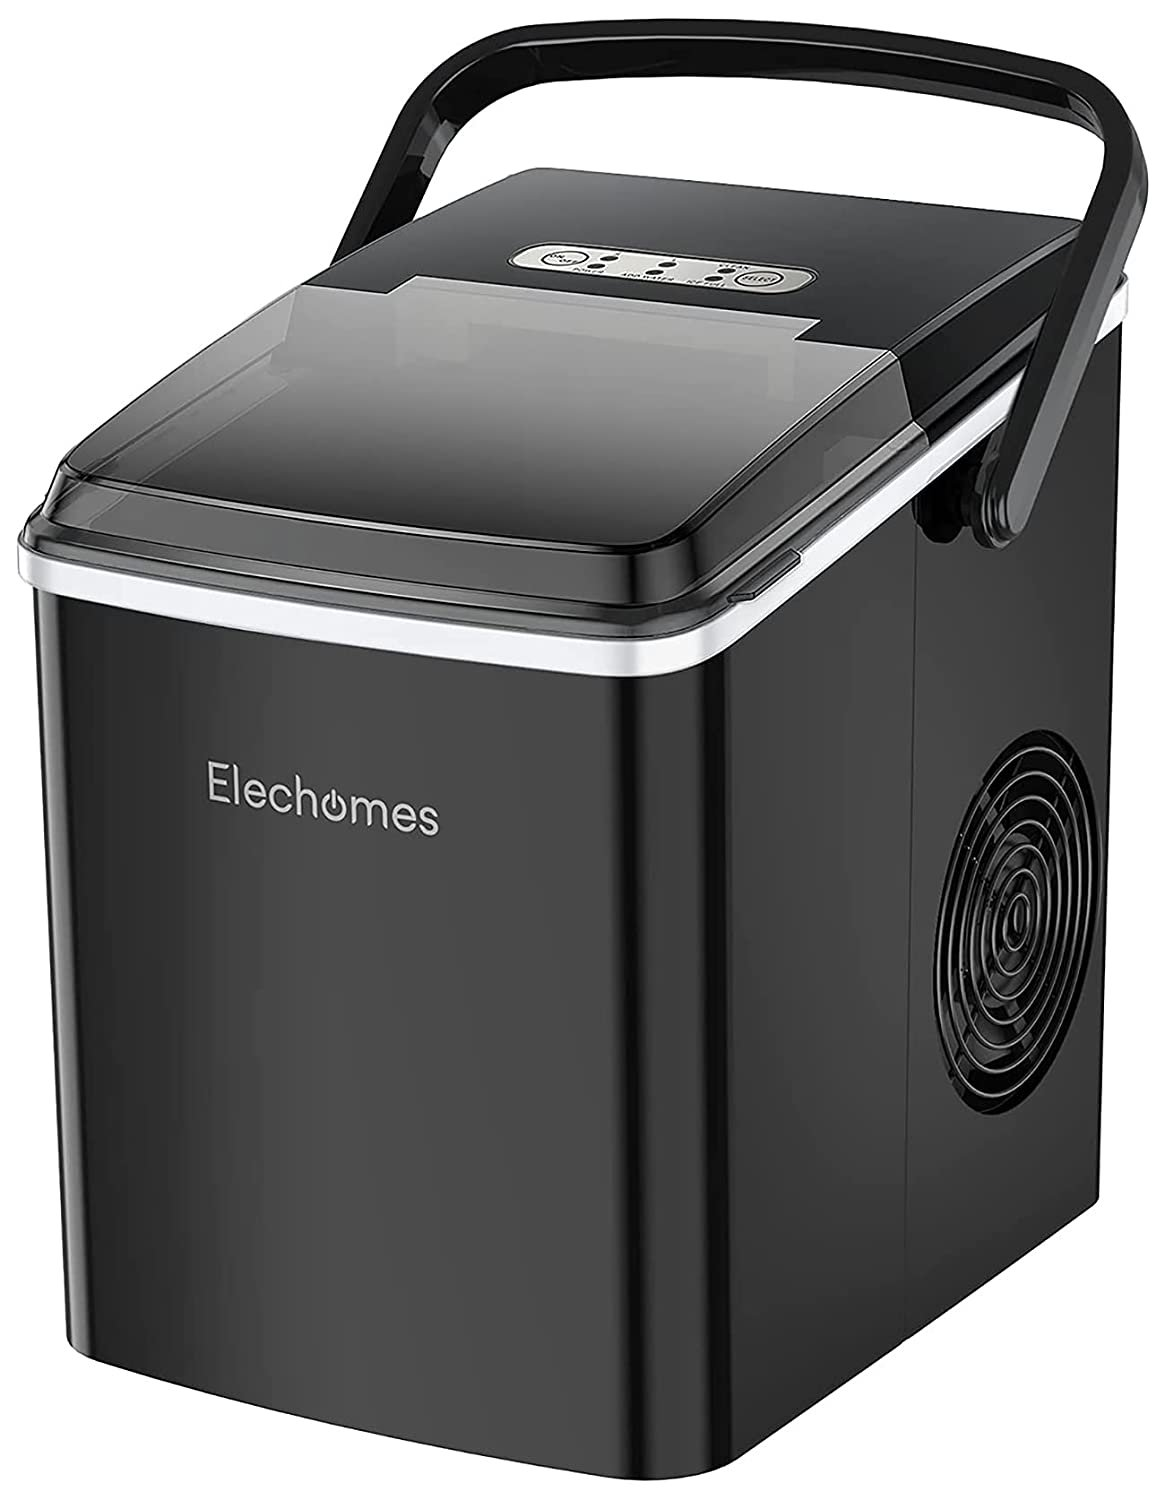 Countertop Ice Maker Machine, Elechomes Portable Ice Maker with Handle